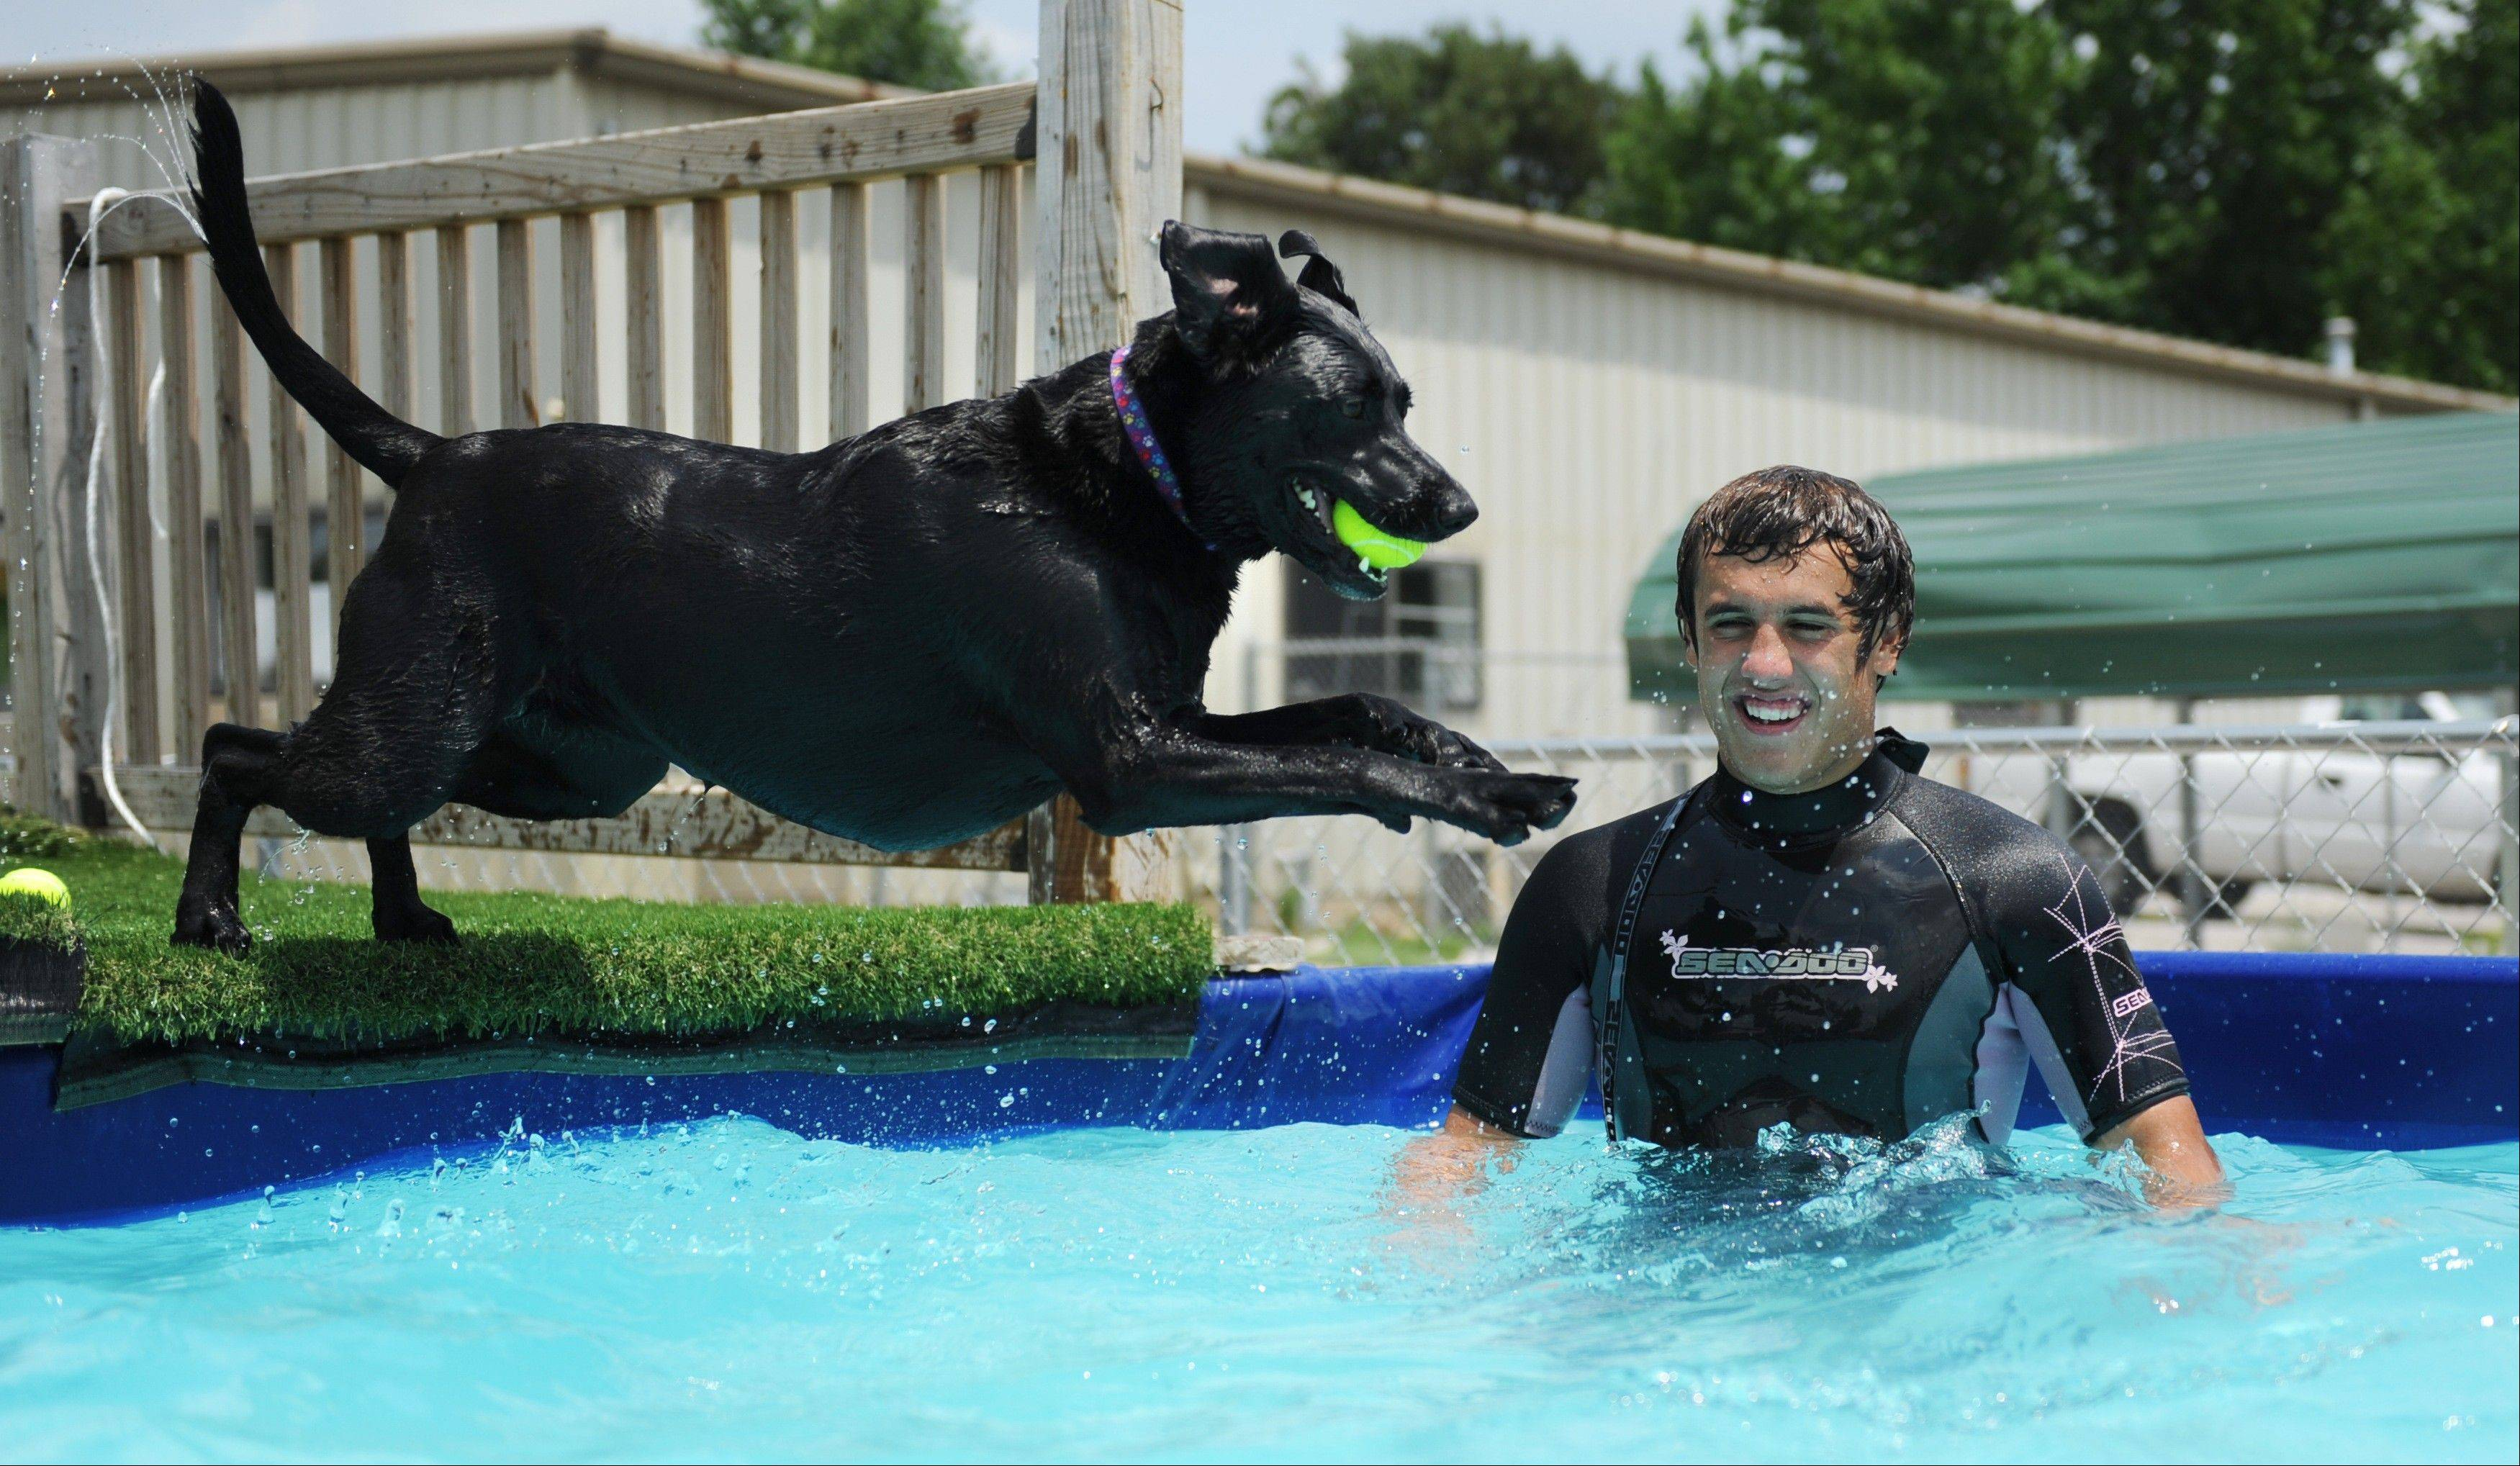 Madison, a black lab mix, leaps back into the pool during �pool time� with Luke Terrell at The Dog House, a cage-free boarding and doggy daycare, in Bloomington, Ind. The large pool is a great way to cool off in the extreme heat.